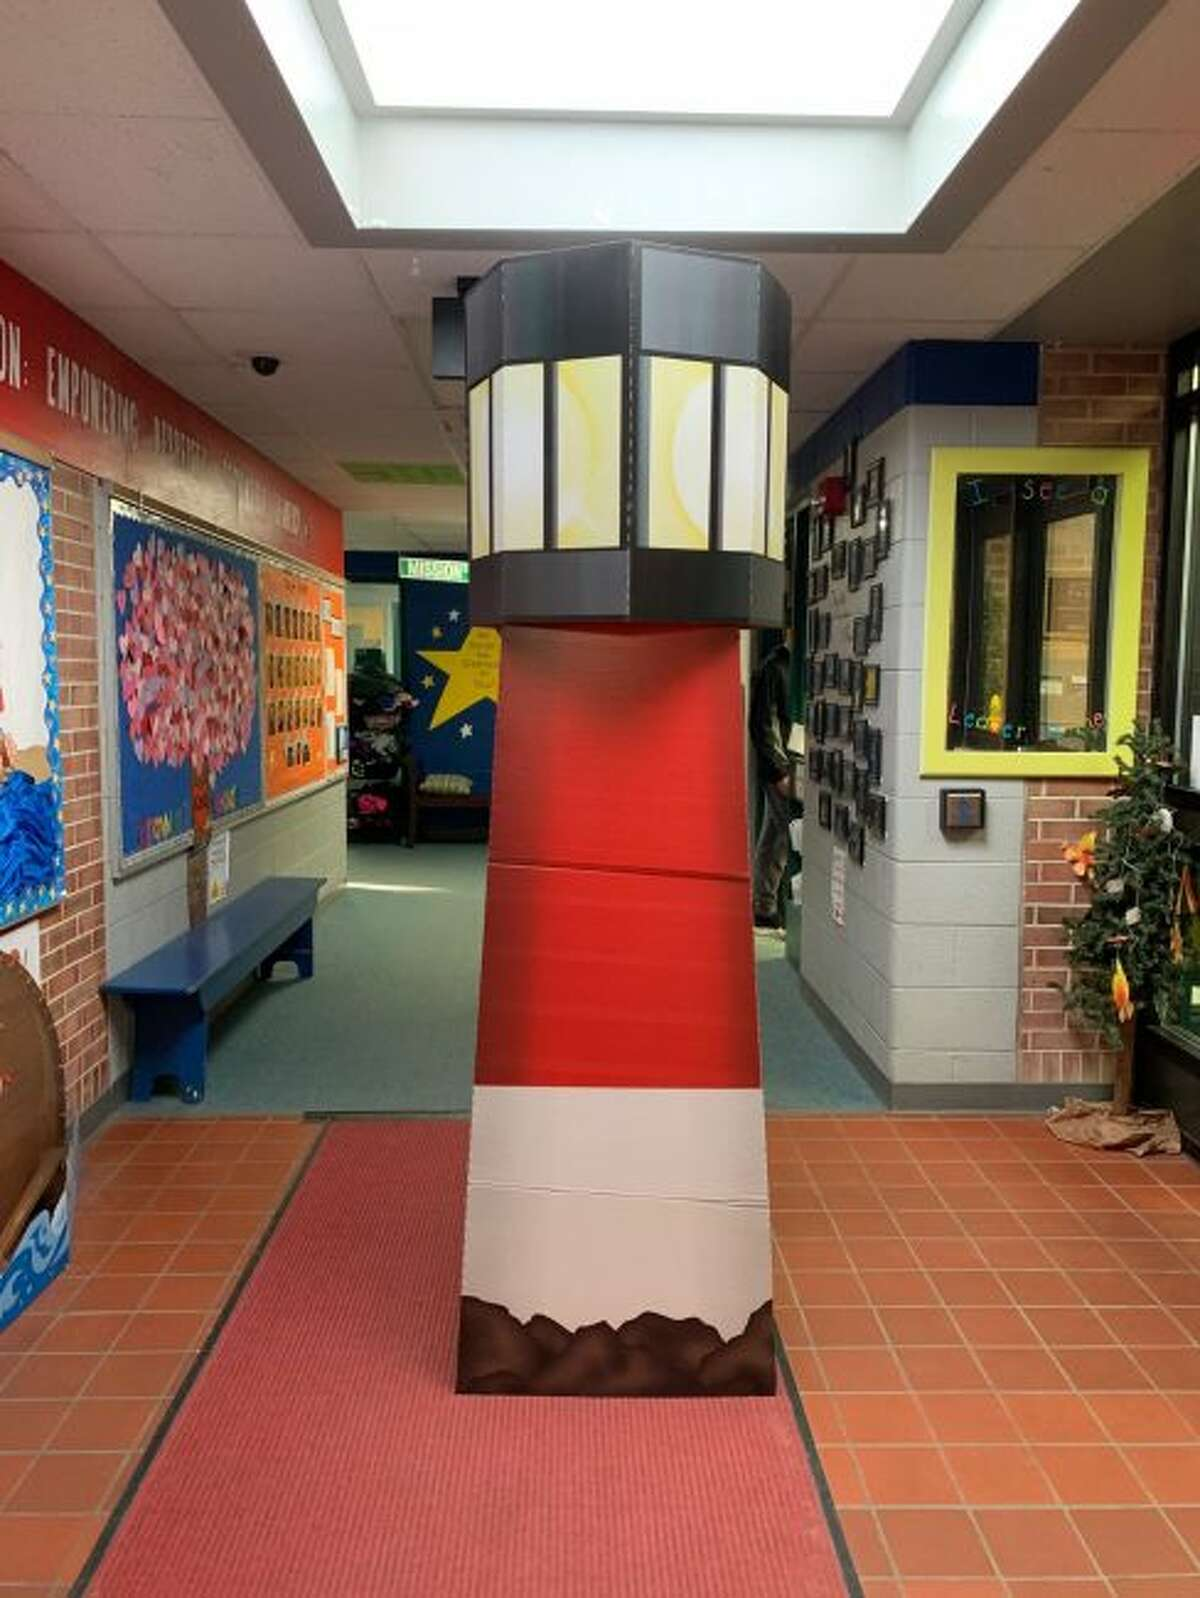 A lighthouse stands inside a hallway at Brookside Elementary School in Big Rapids, in recognition of the school's recent designation by the FranklinCovey education training firm. (Courtesy photo)